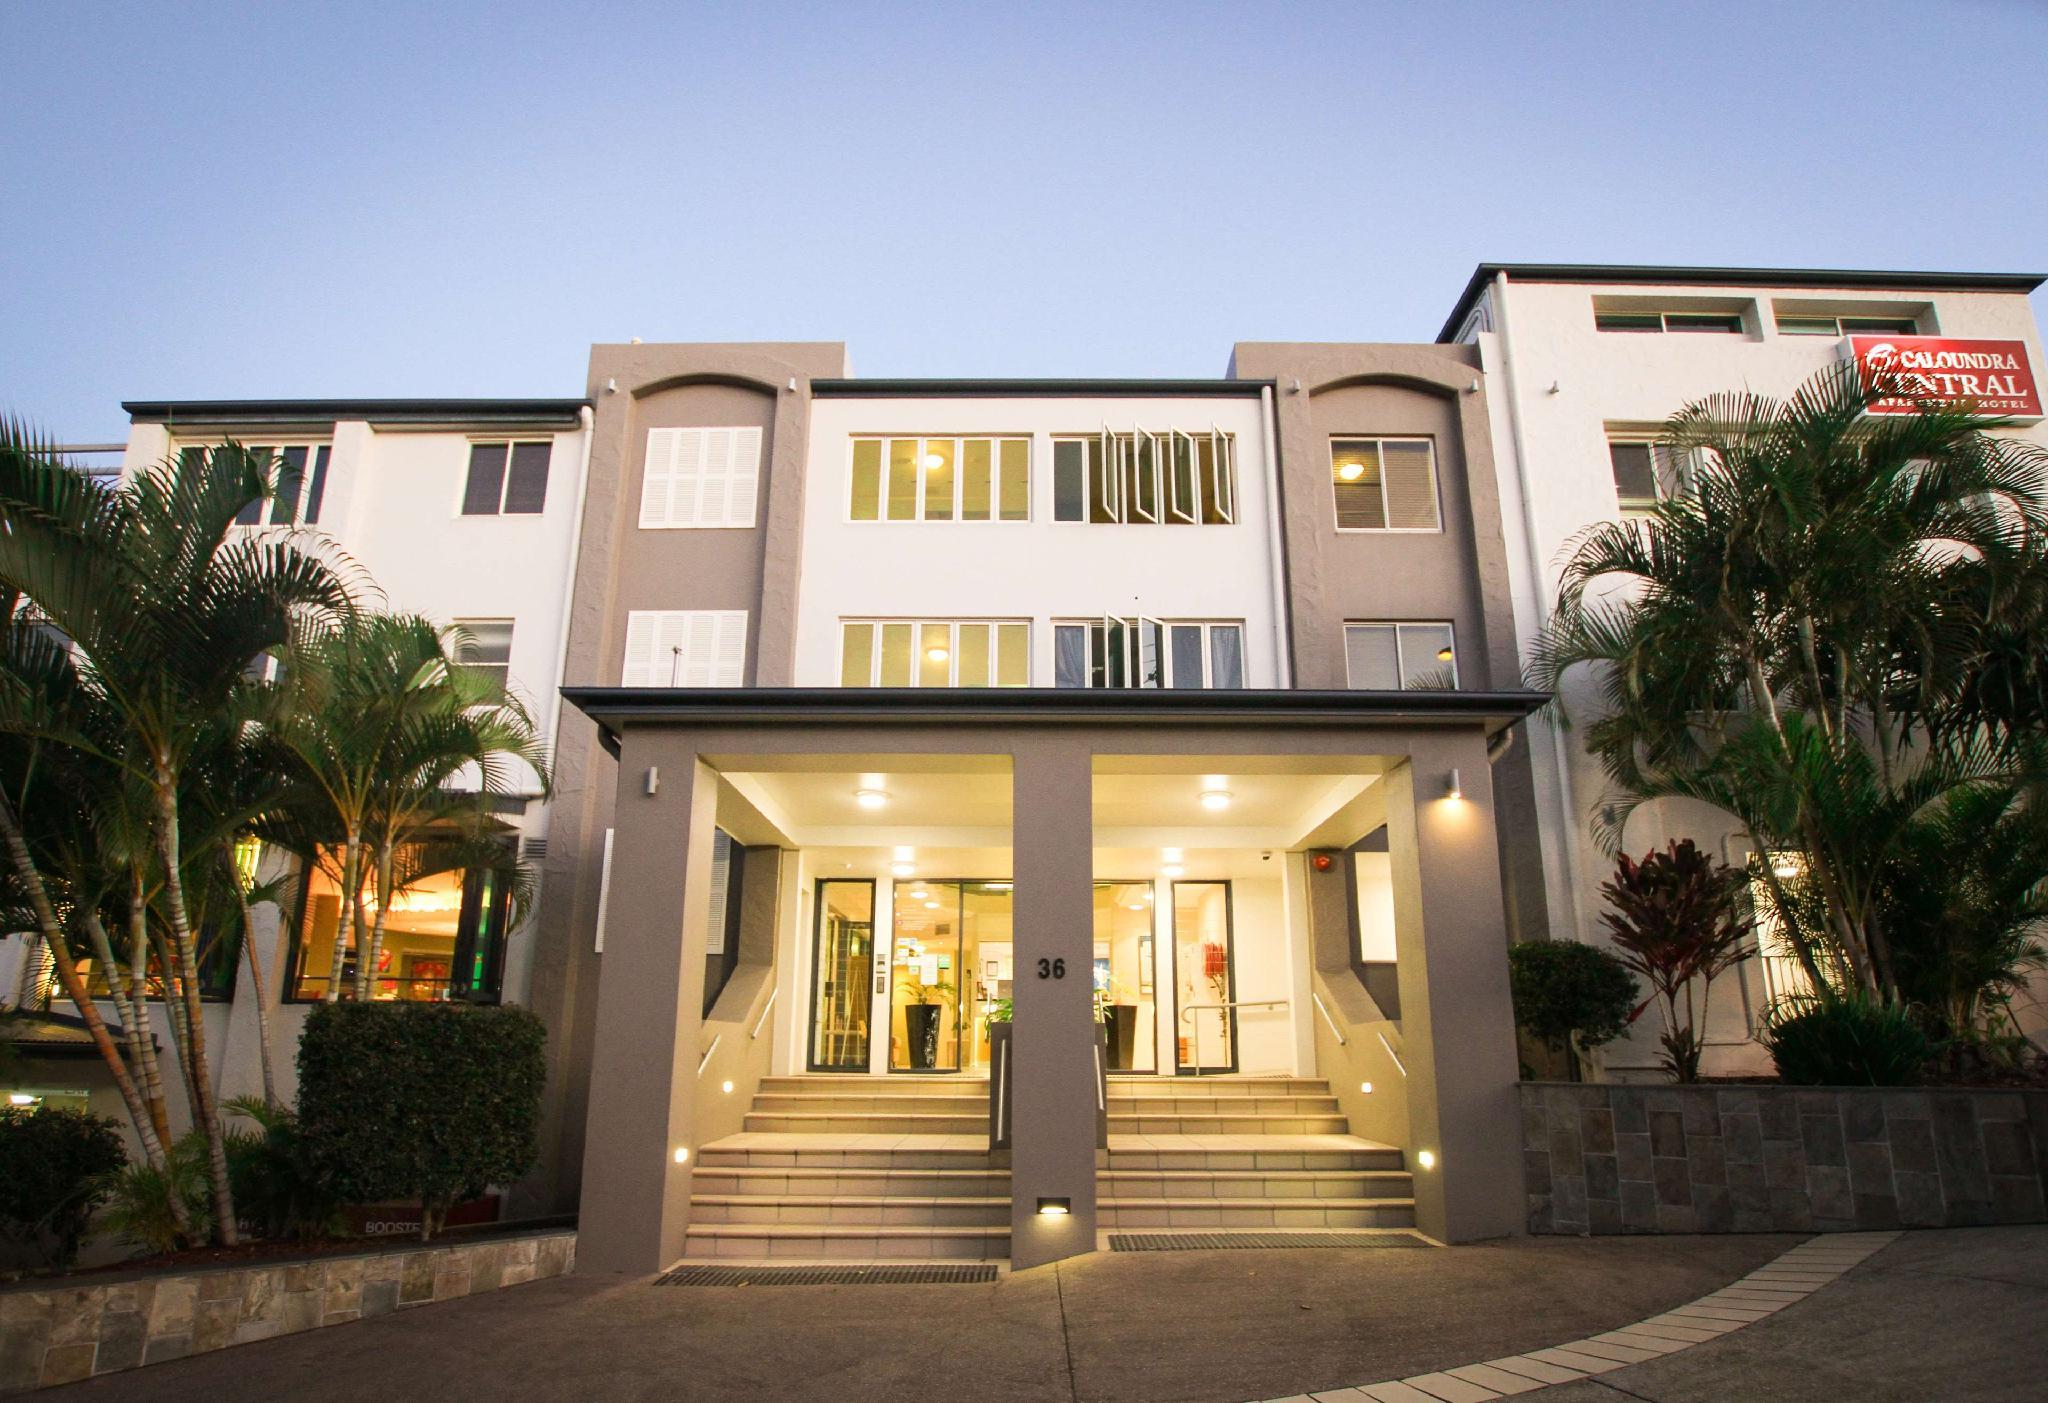 About Caloundra Central Apartment Hotel